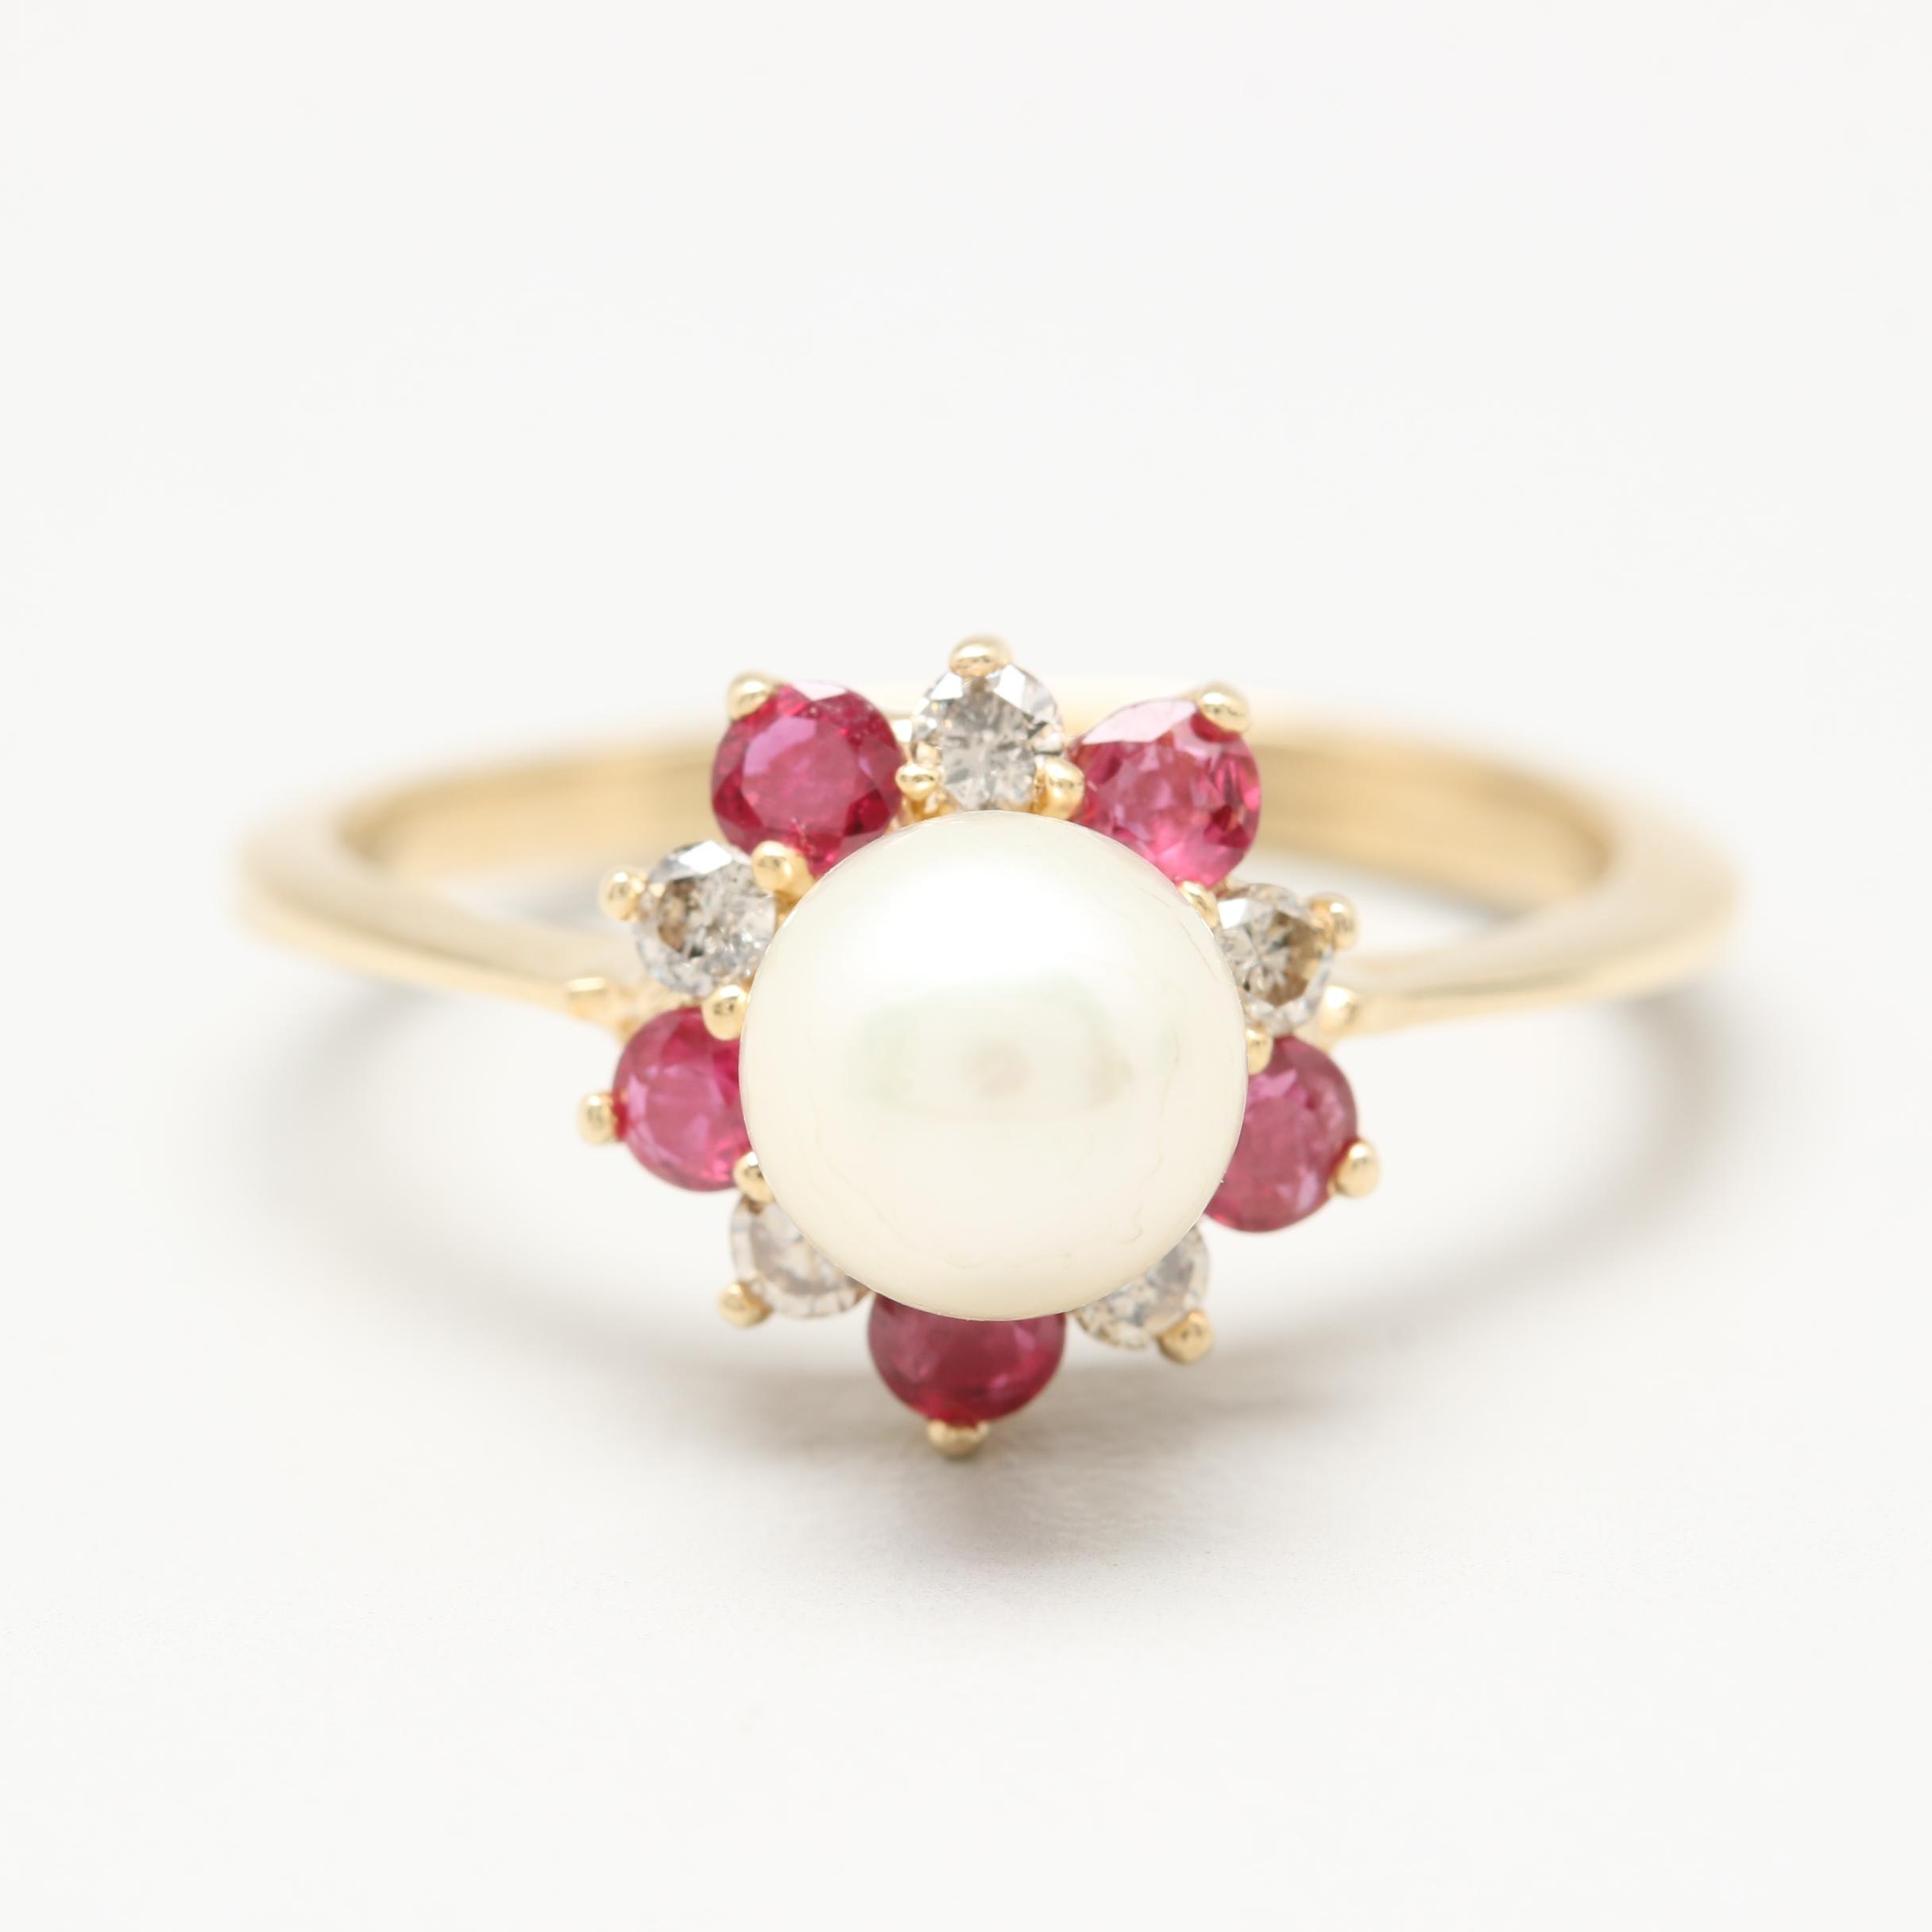 14K Yellow Gold Cultured Pearl, Diamond, and Ruby Ring